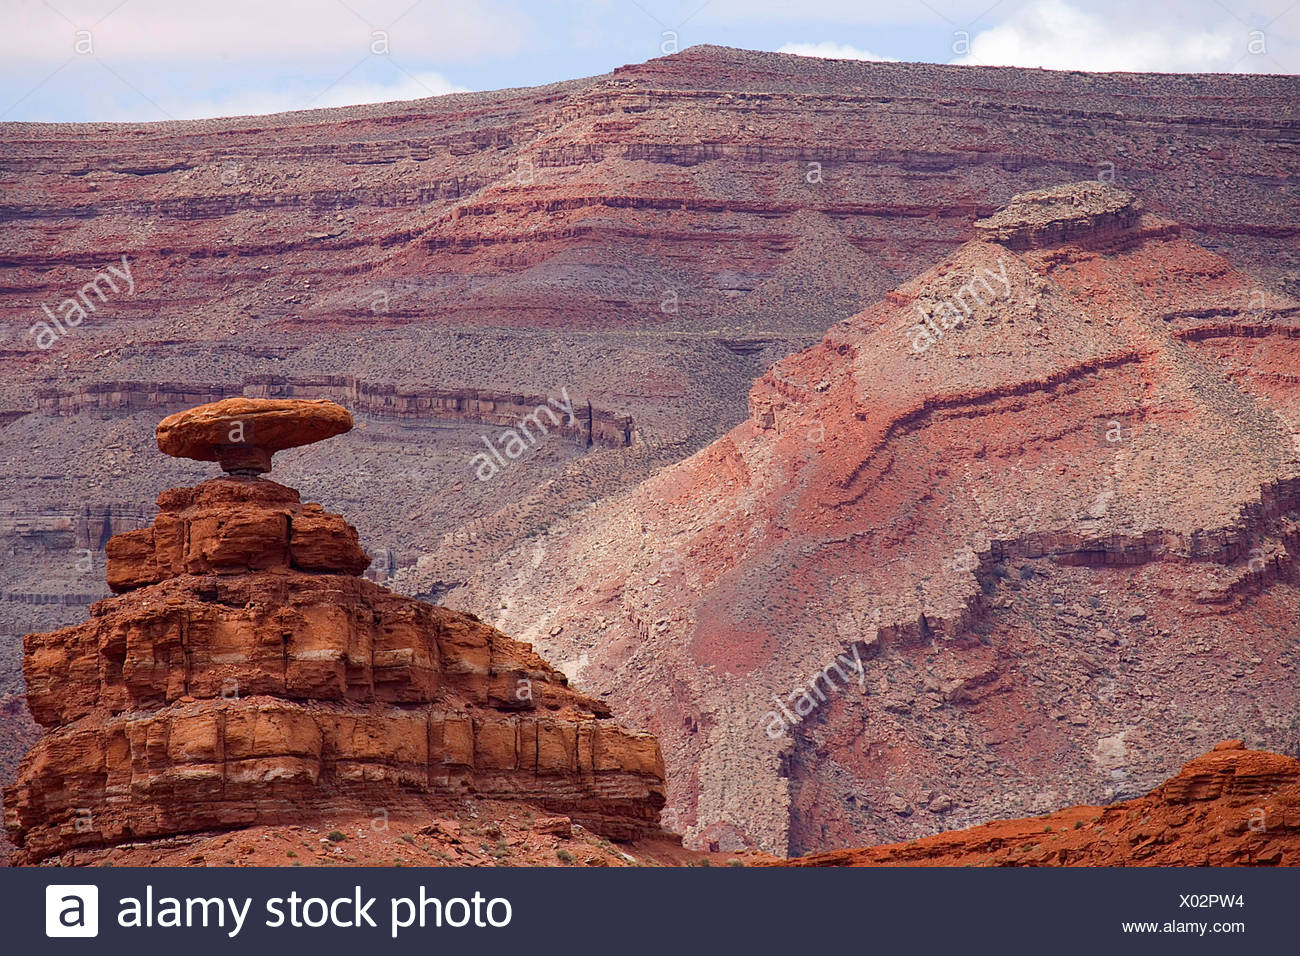 The rock formation that resembles a Mexican hat at Mexican Hat, Utah - Stock Image